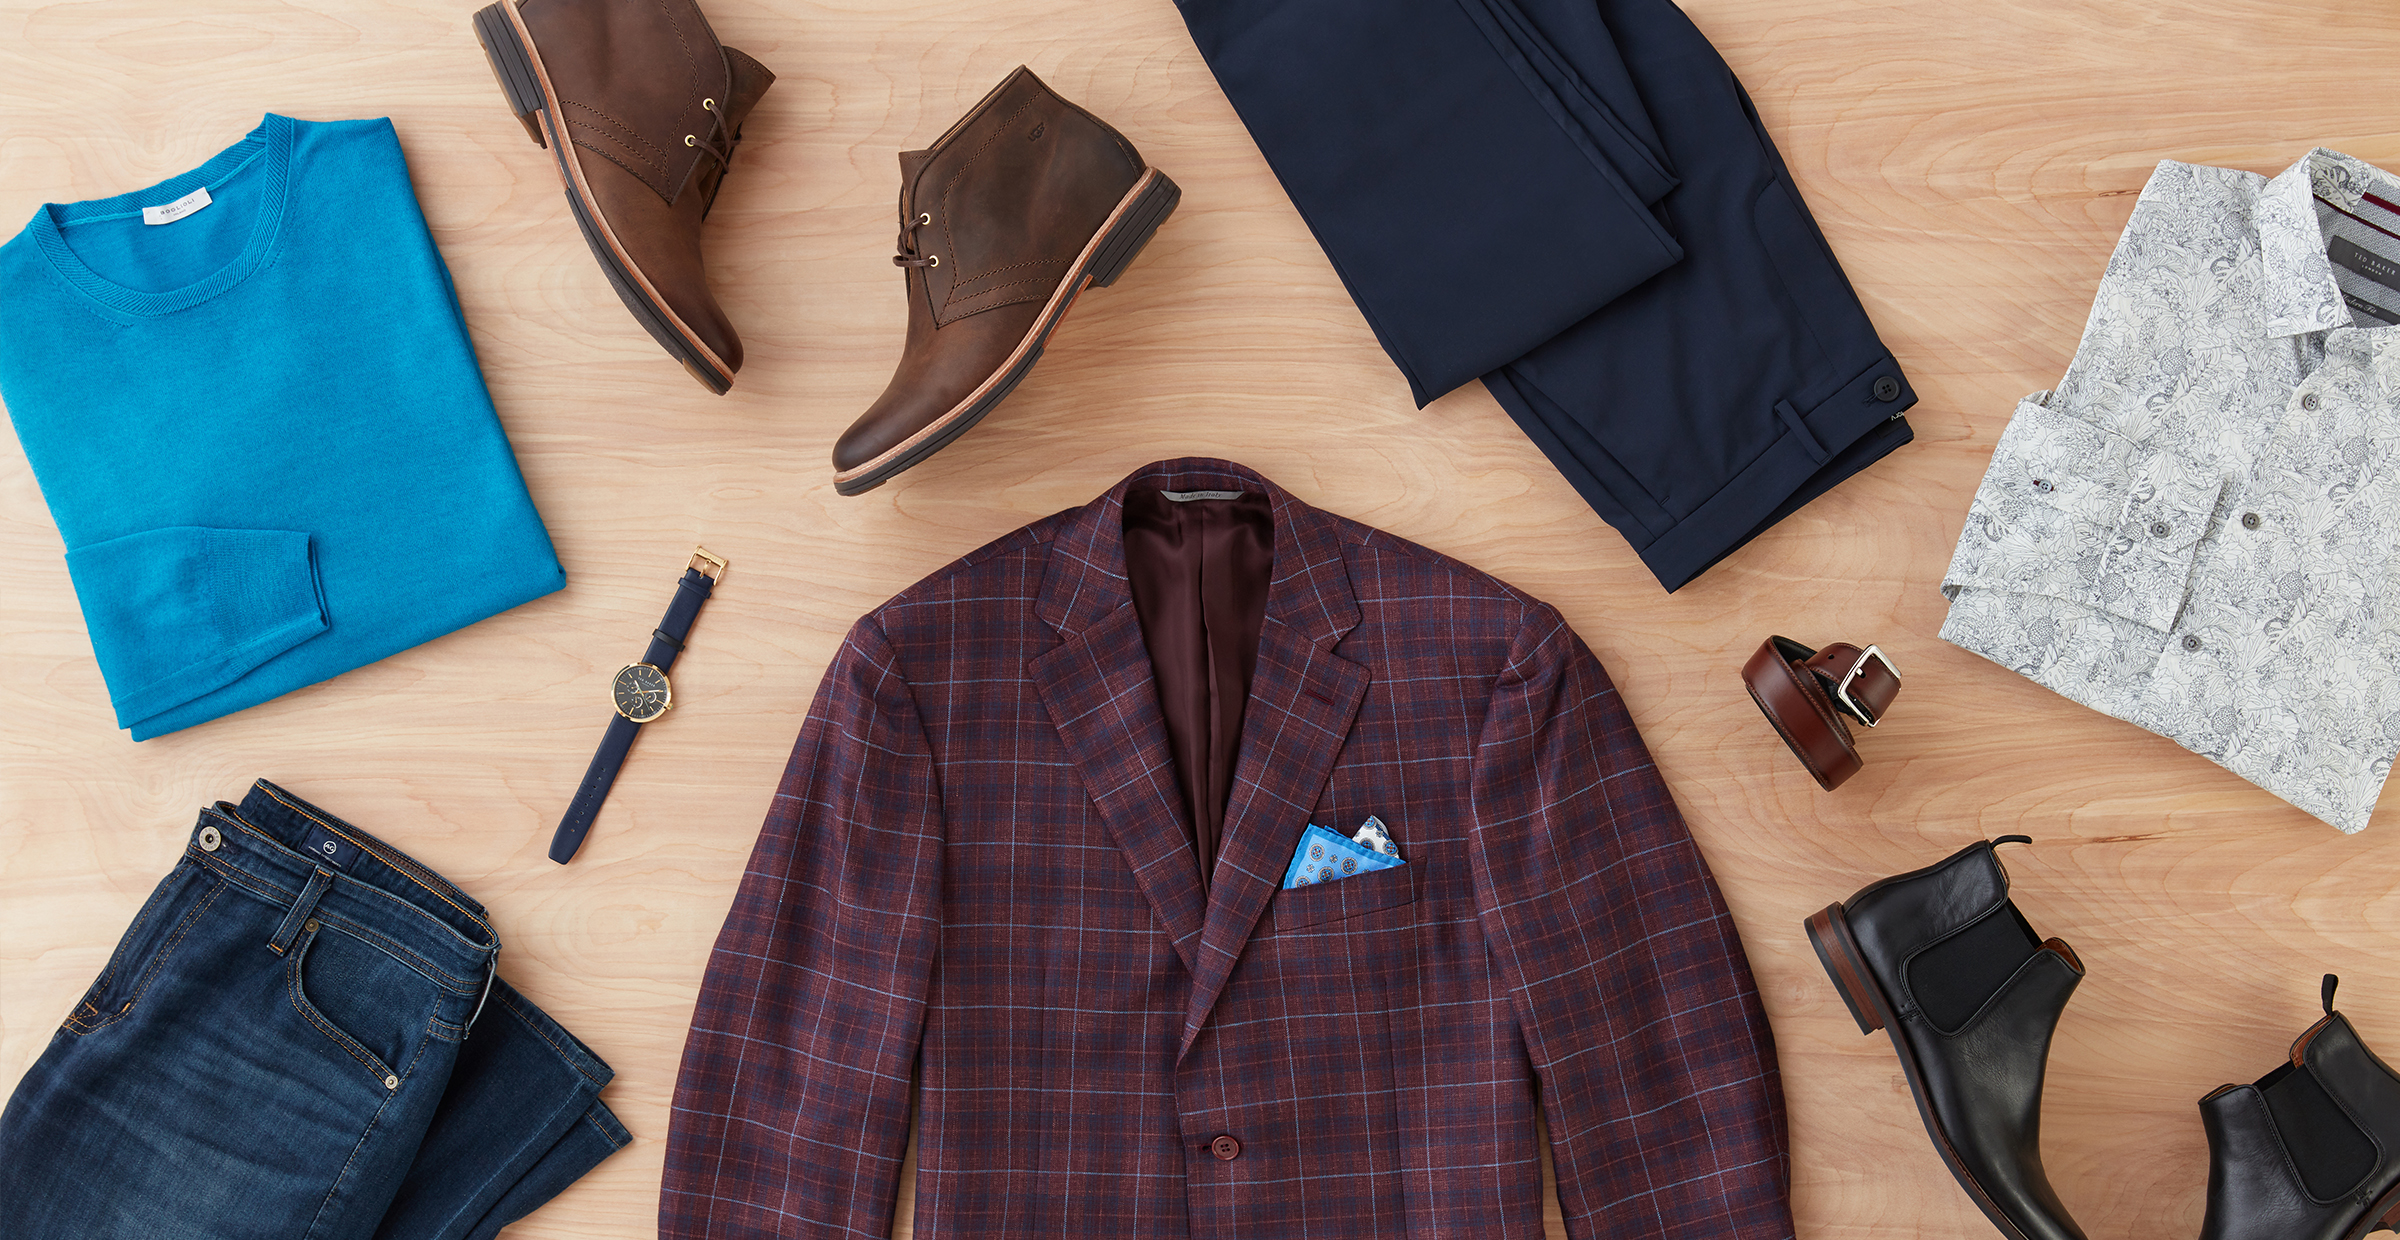 Men's fall clothing essentials